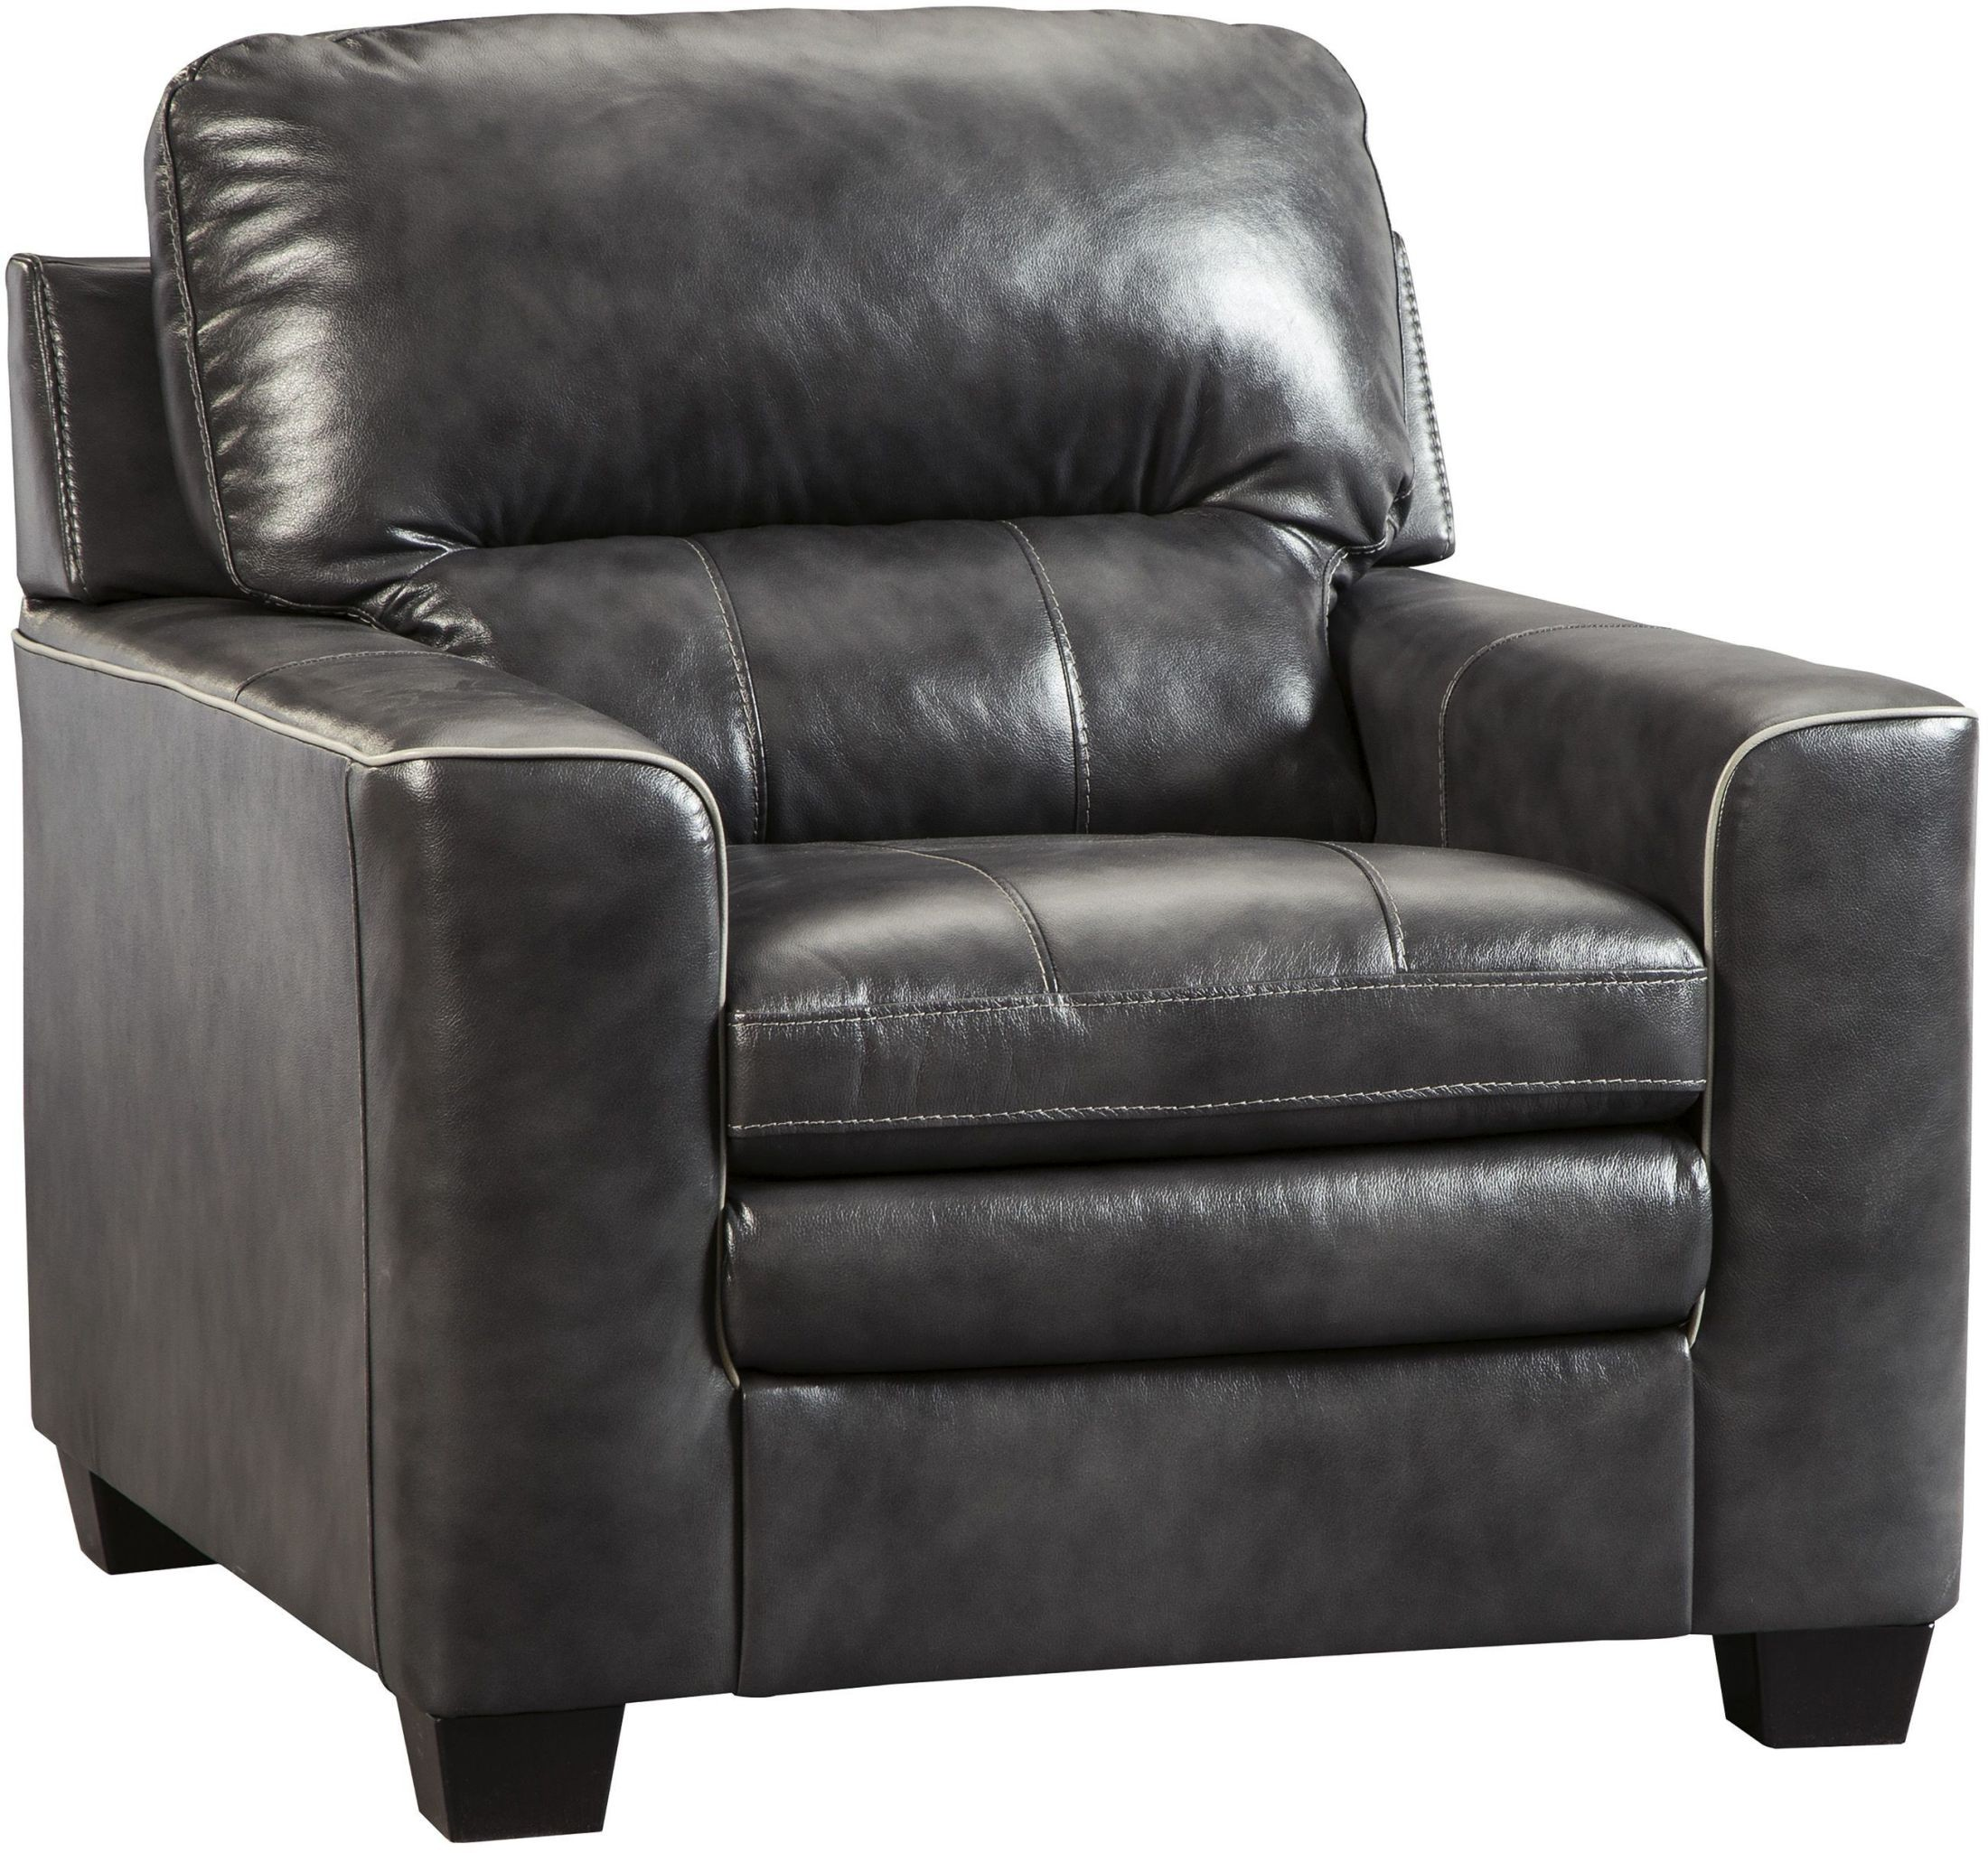 Gleason Charcoal Chair from Ashley  Coleman Furniture